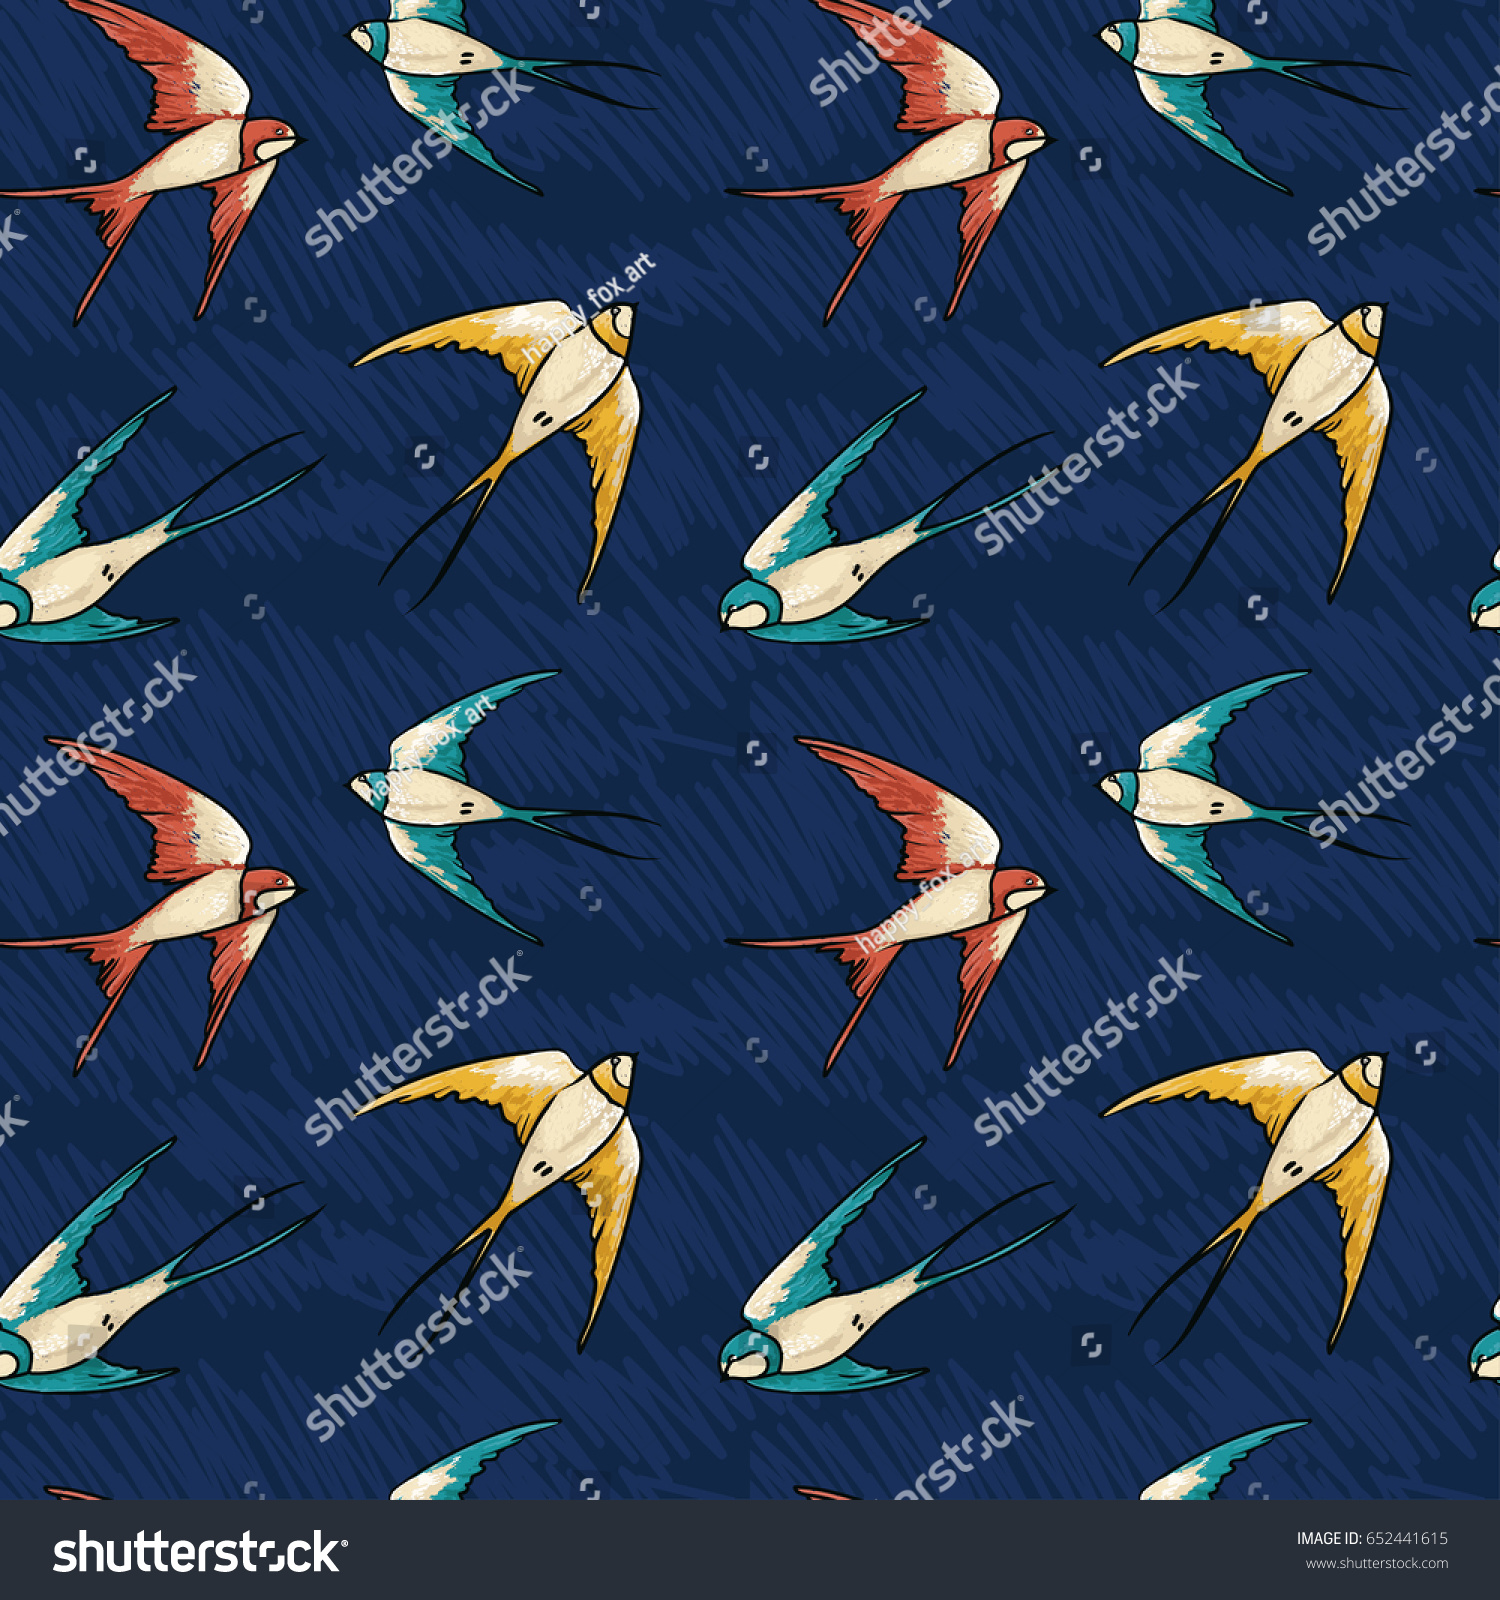 Set of sketches of flying swallows stock vector illustration - Seamless Pattern With Flying Colorful Swallows On Deep Blue Sky Sketch Style Vector Illustration